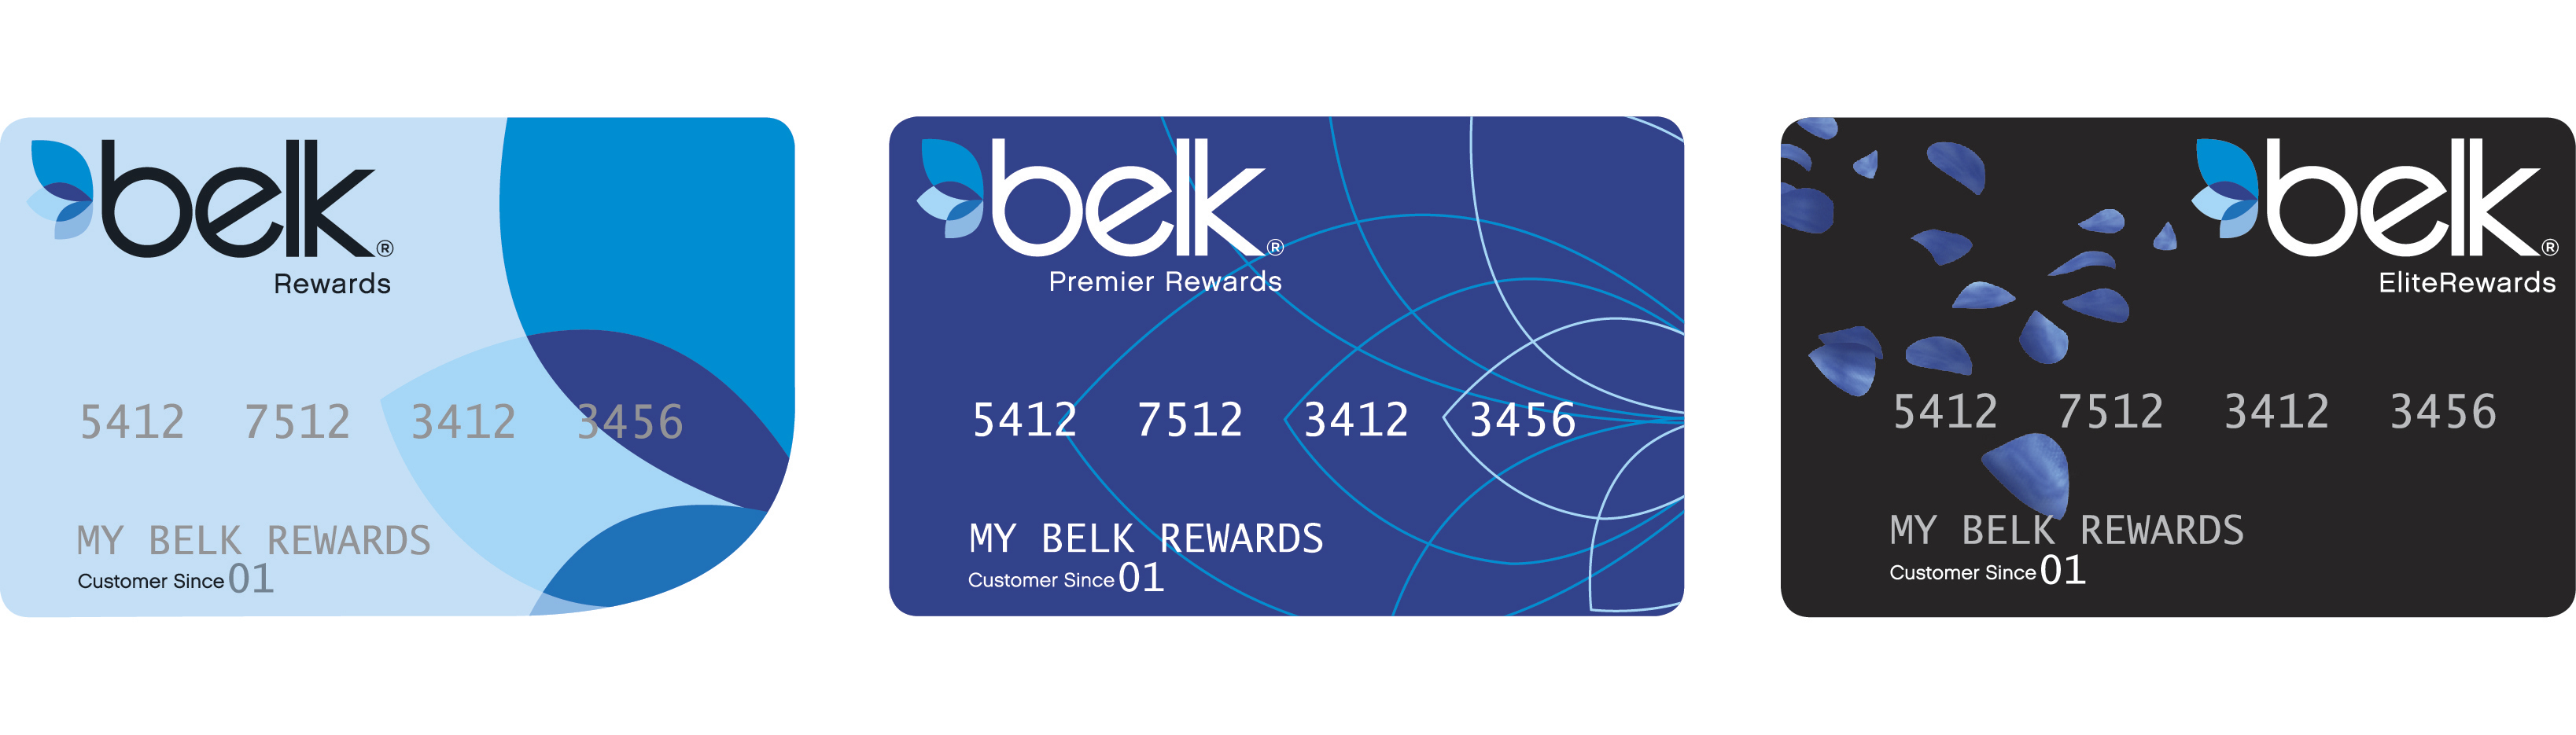 Synchrony Financial And Belk Extend Consumer Financing Program Agreement |  Business Wire